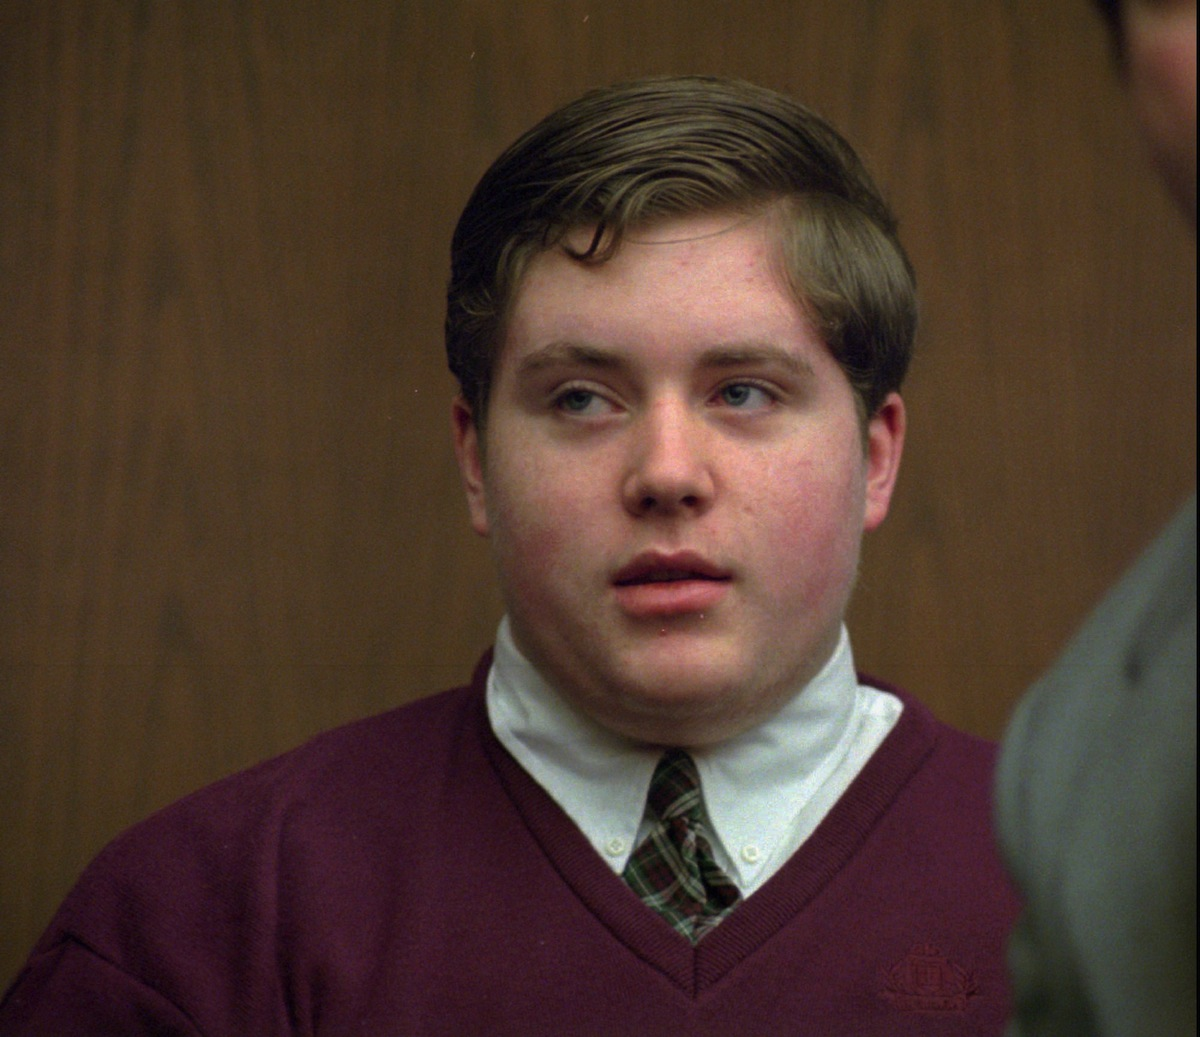 A 1995 file photo of Edward O'Brien on trial via Associated Press